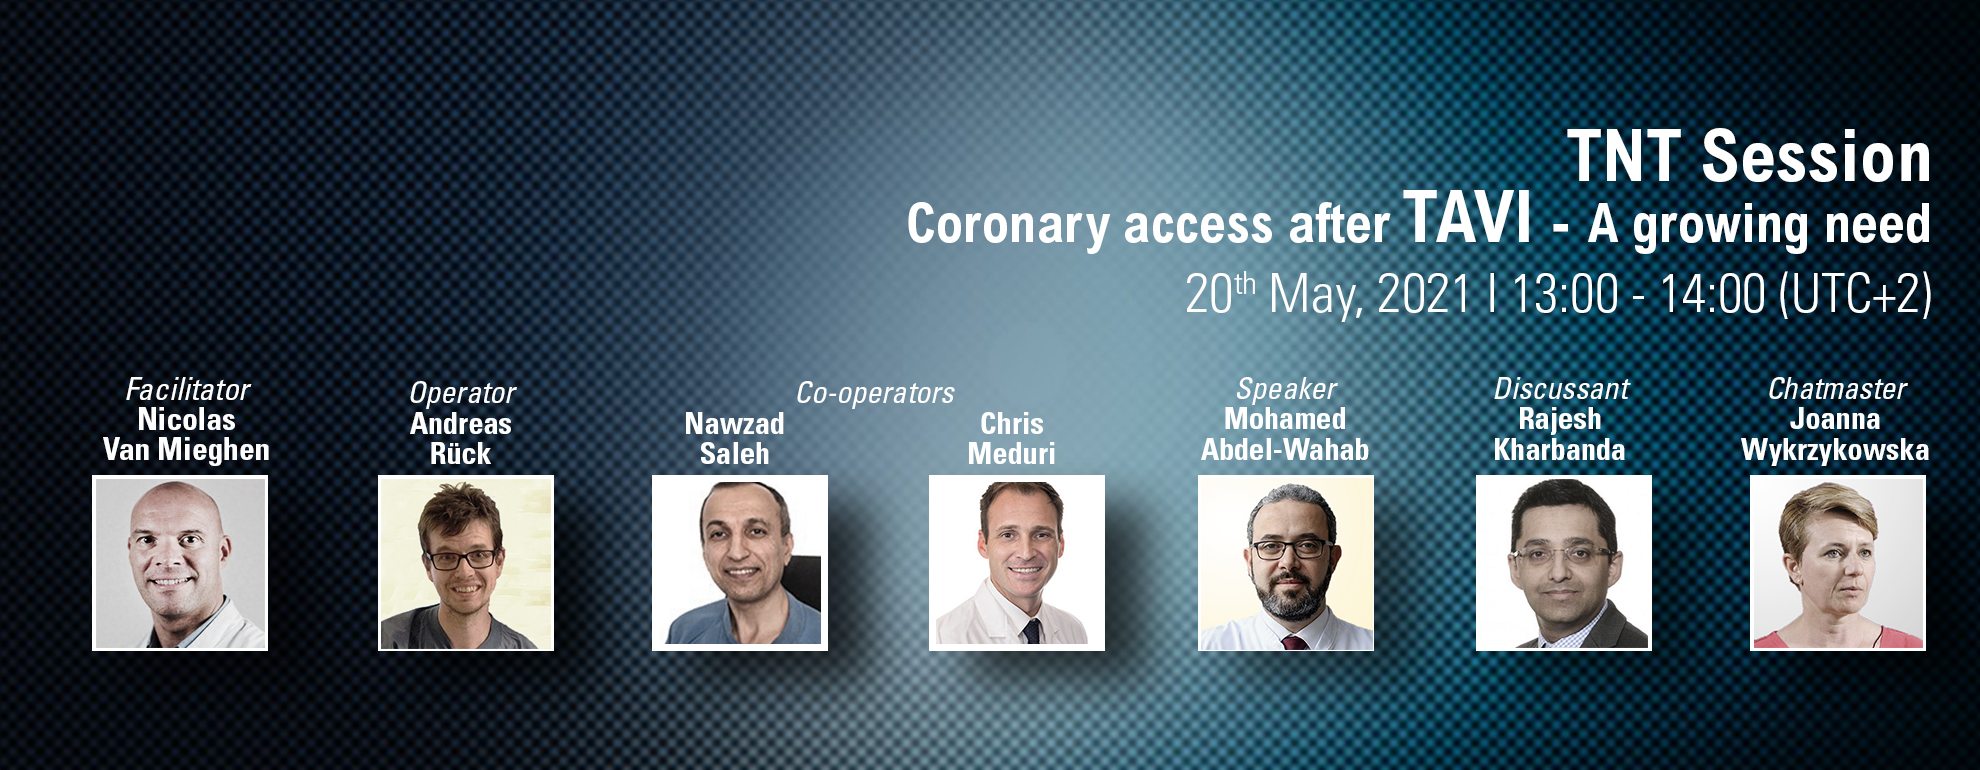 TNT Session - Coronary access after TAVI